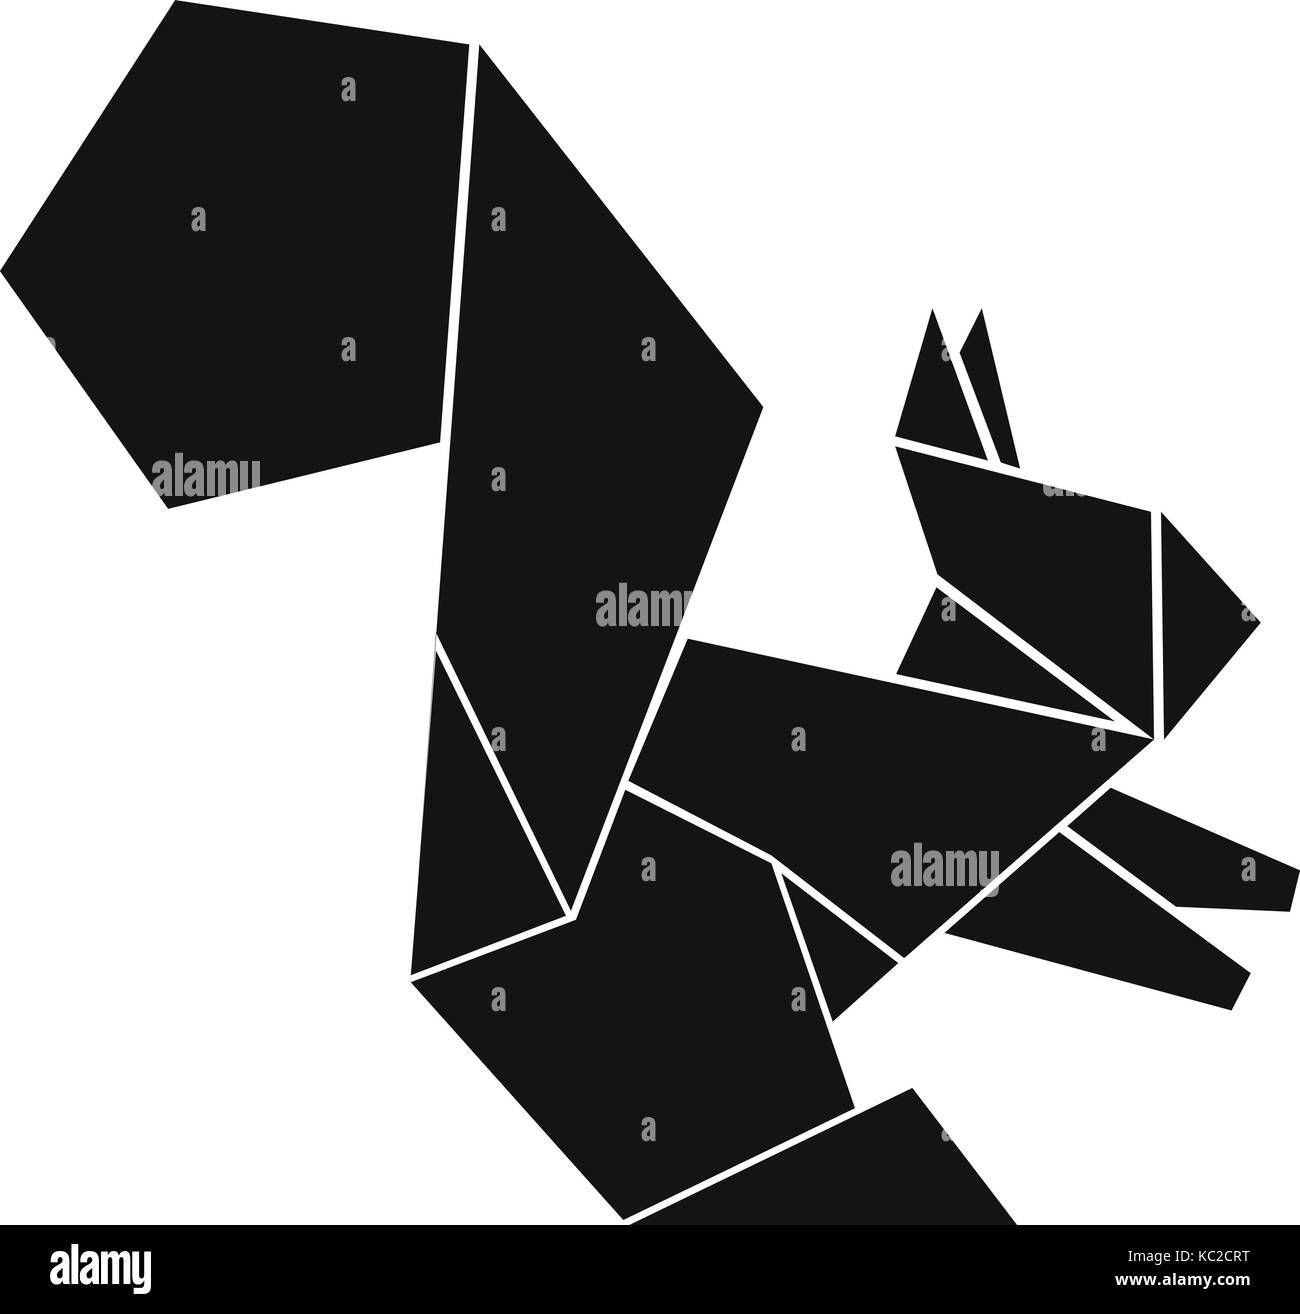 Squirrel Logo Vector Stock Photos Advanced Origami Fox Instructions Diagram Of The Icon Simple Black Style Image